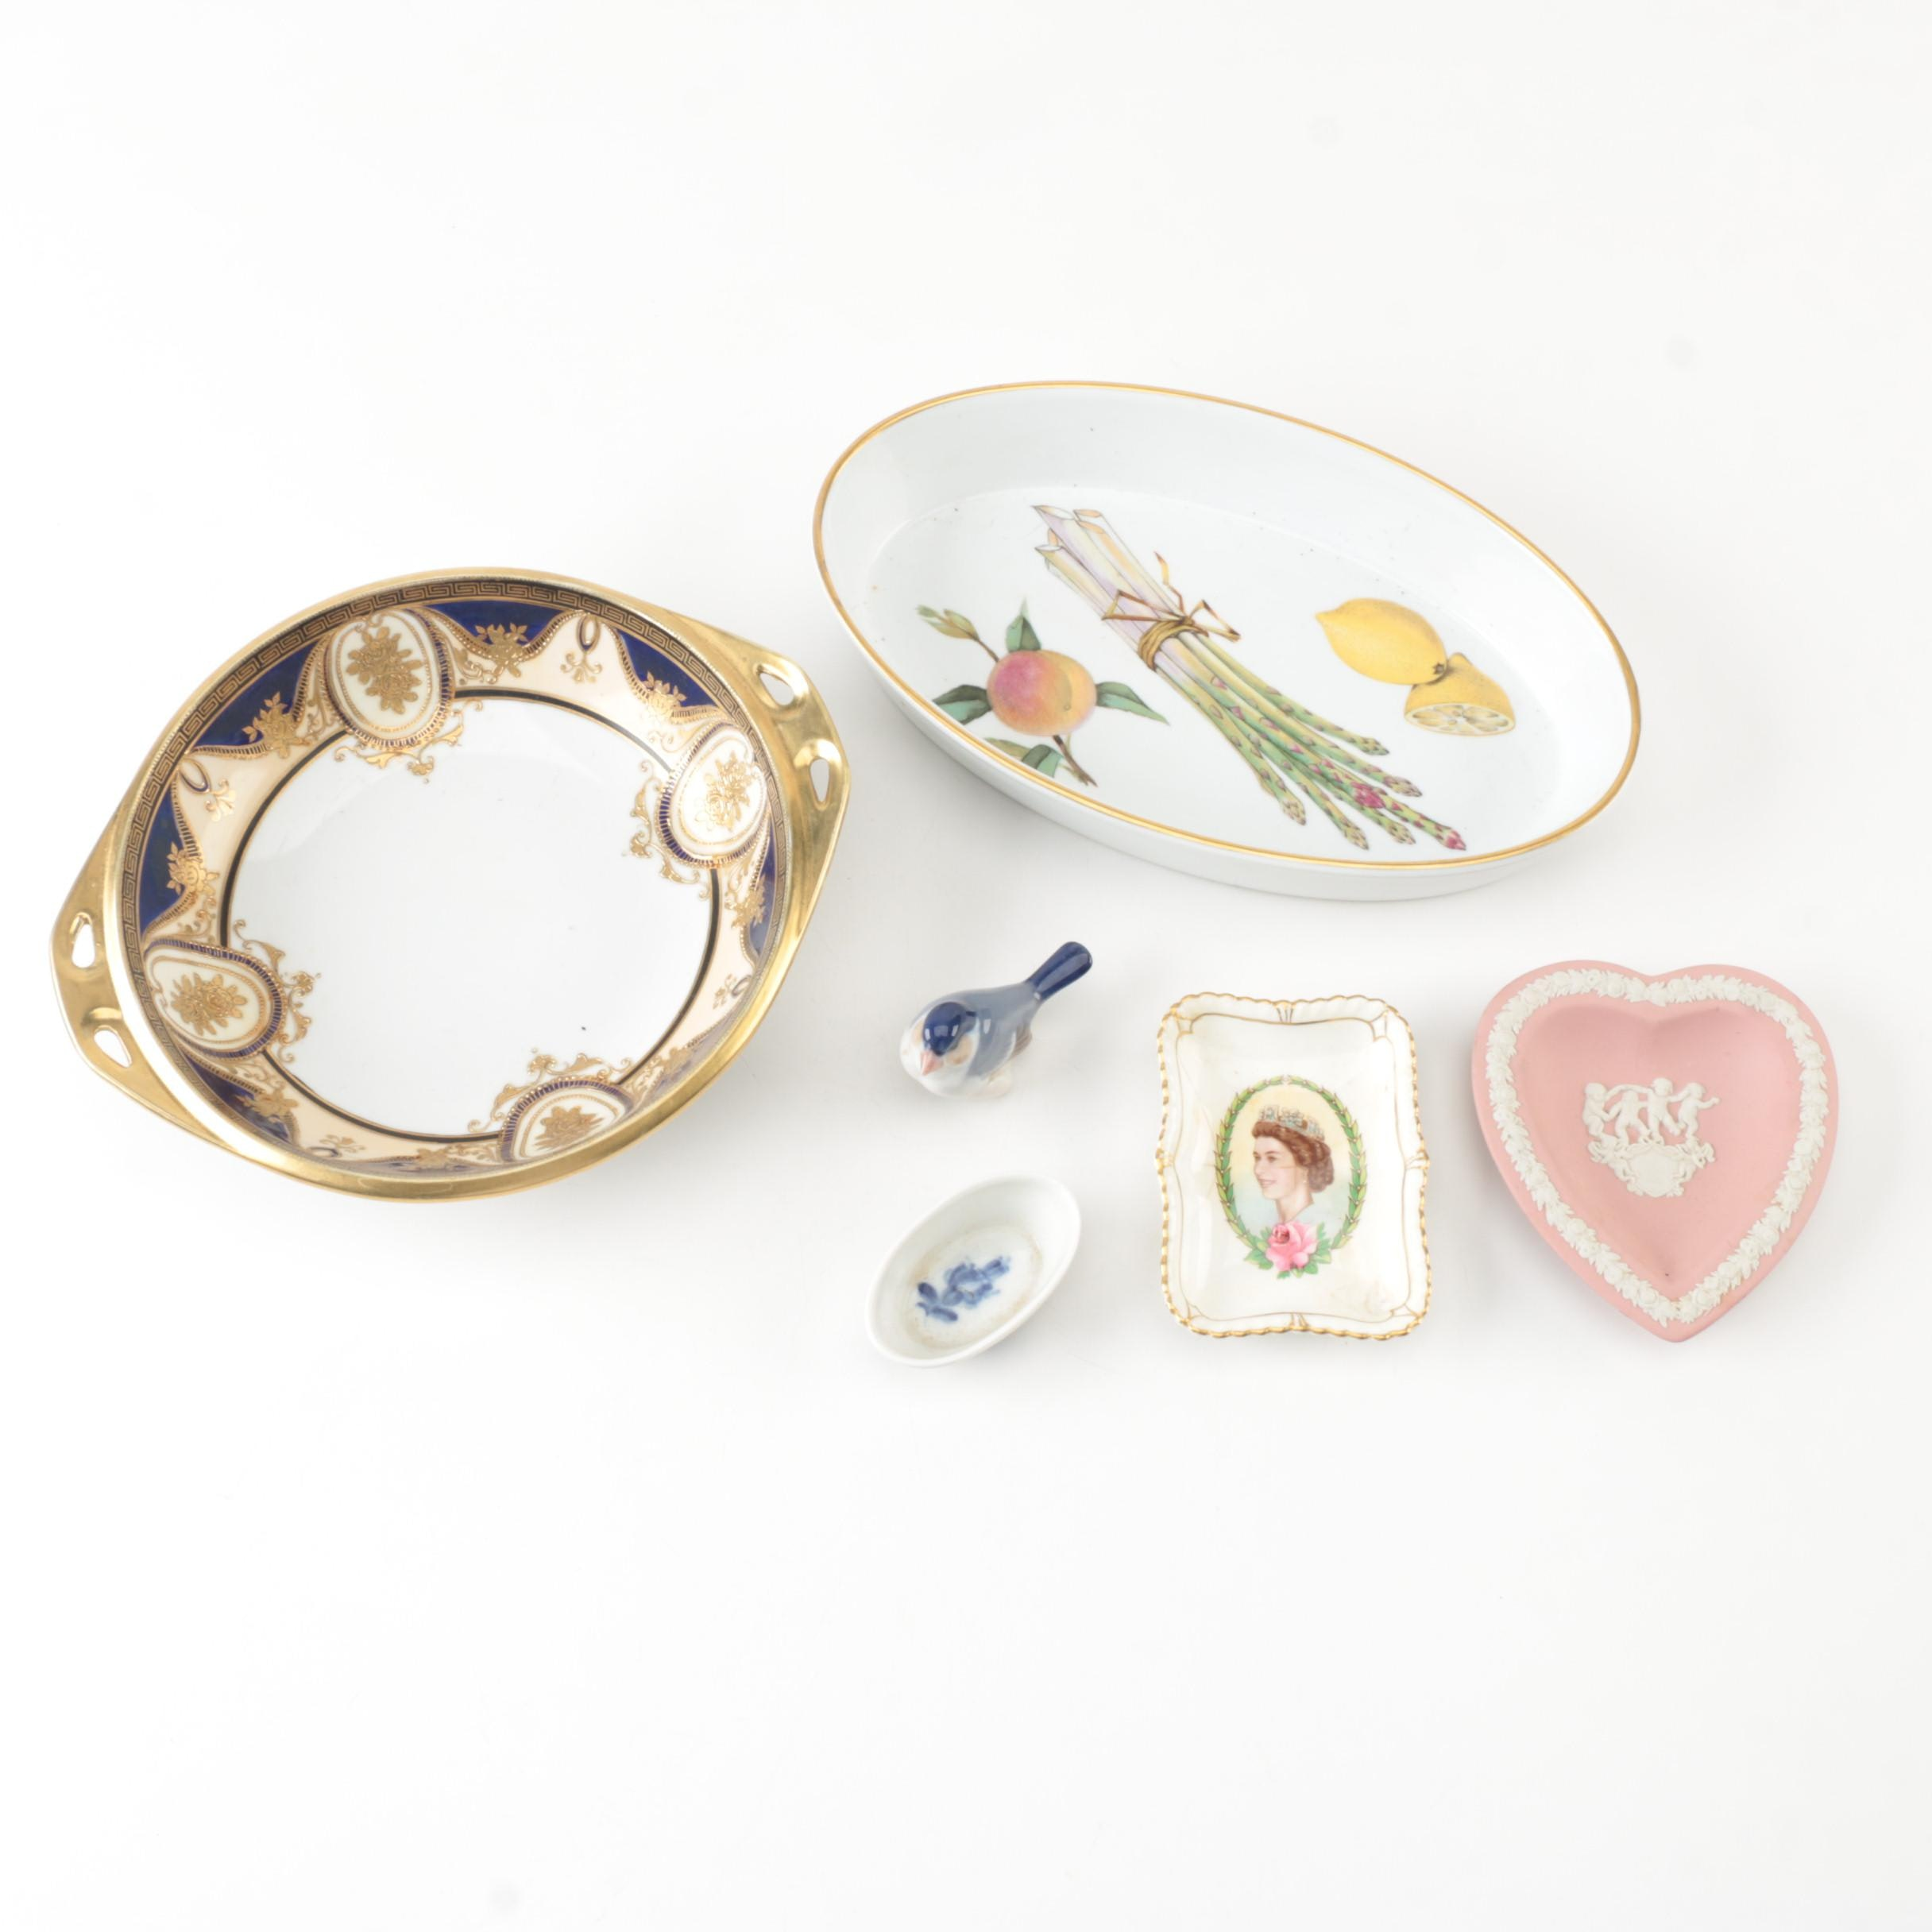 Porcelain and China Featuring Noritake, Wedgwood and Royal Copenhagen